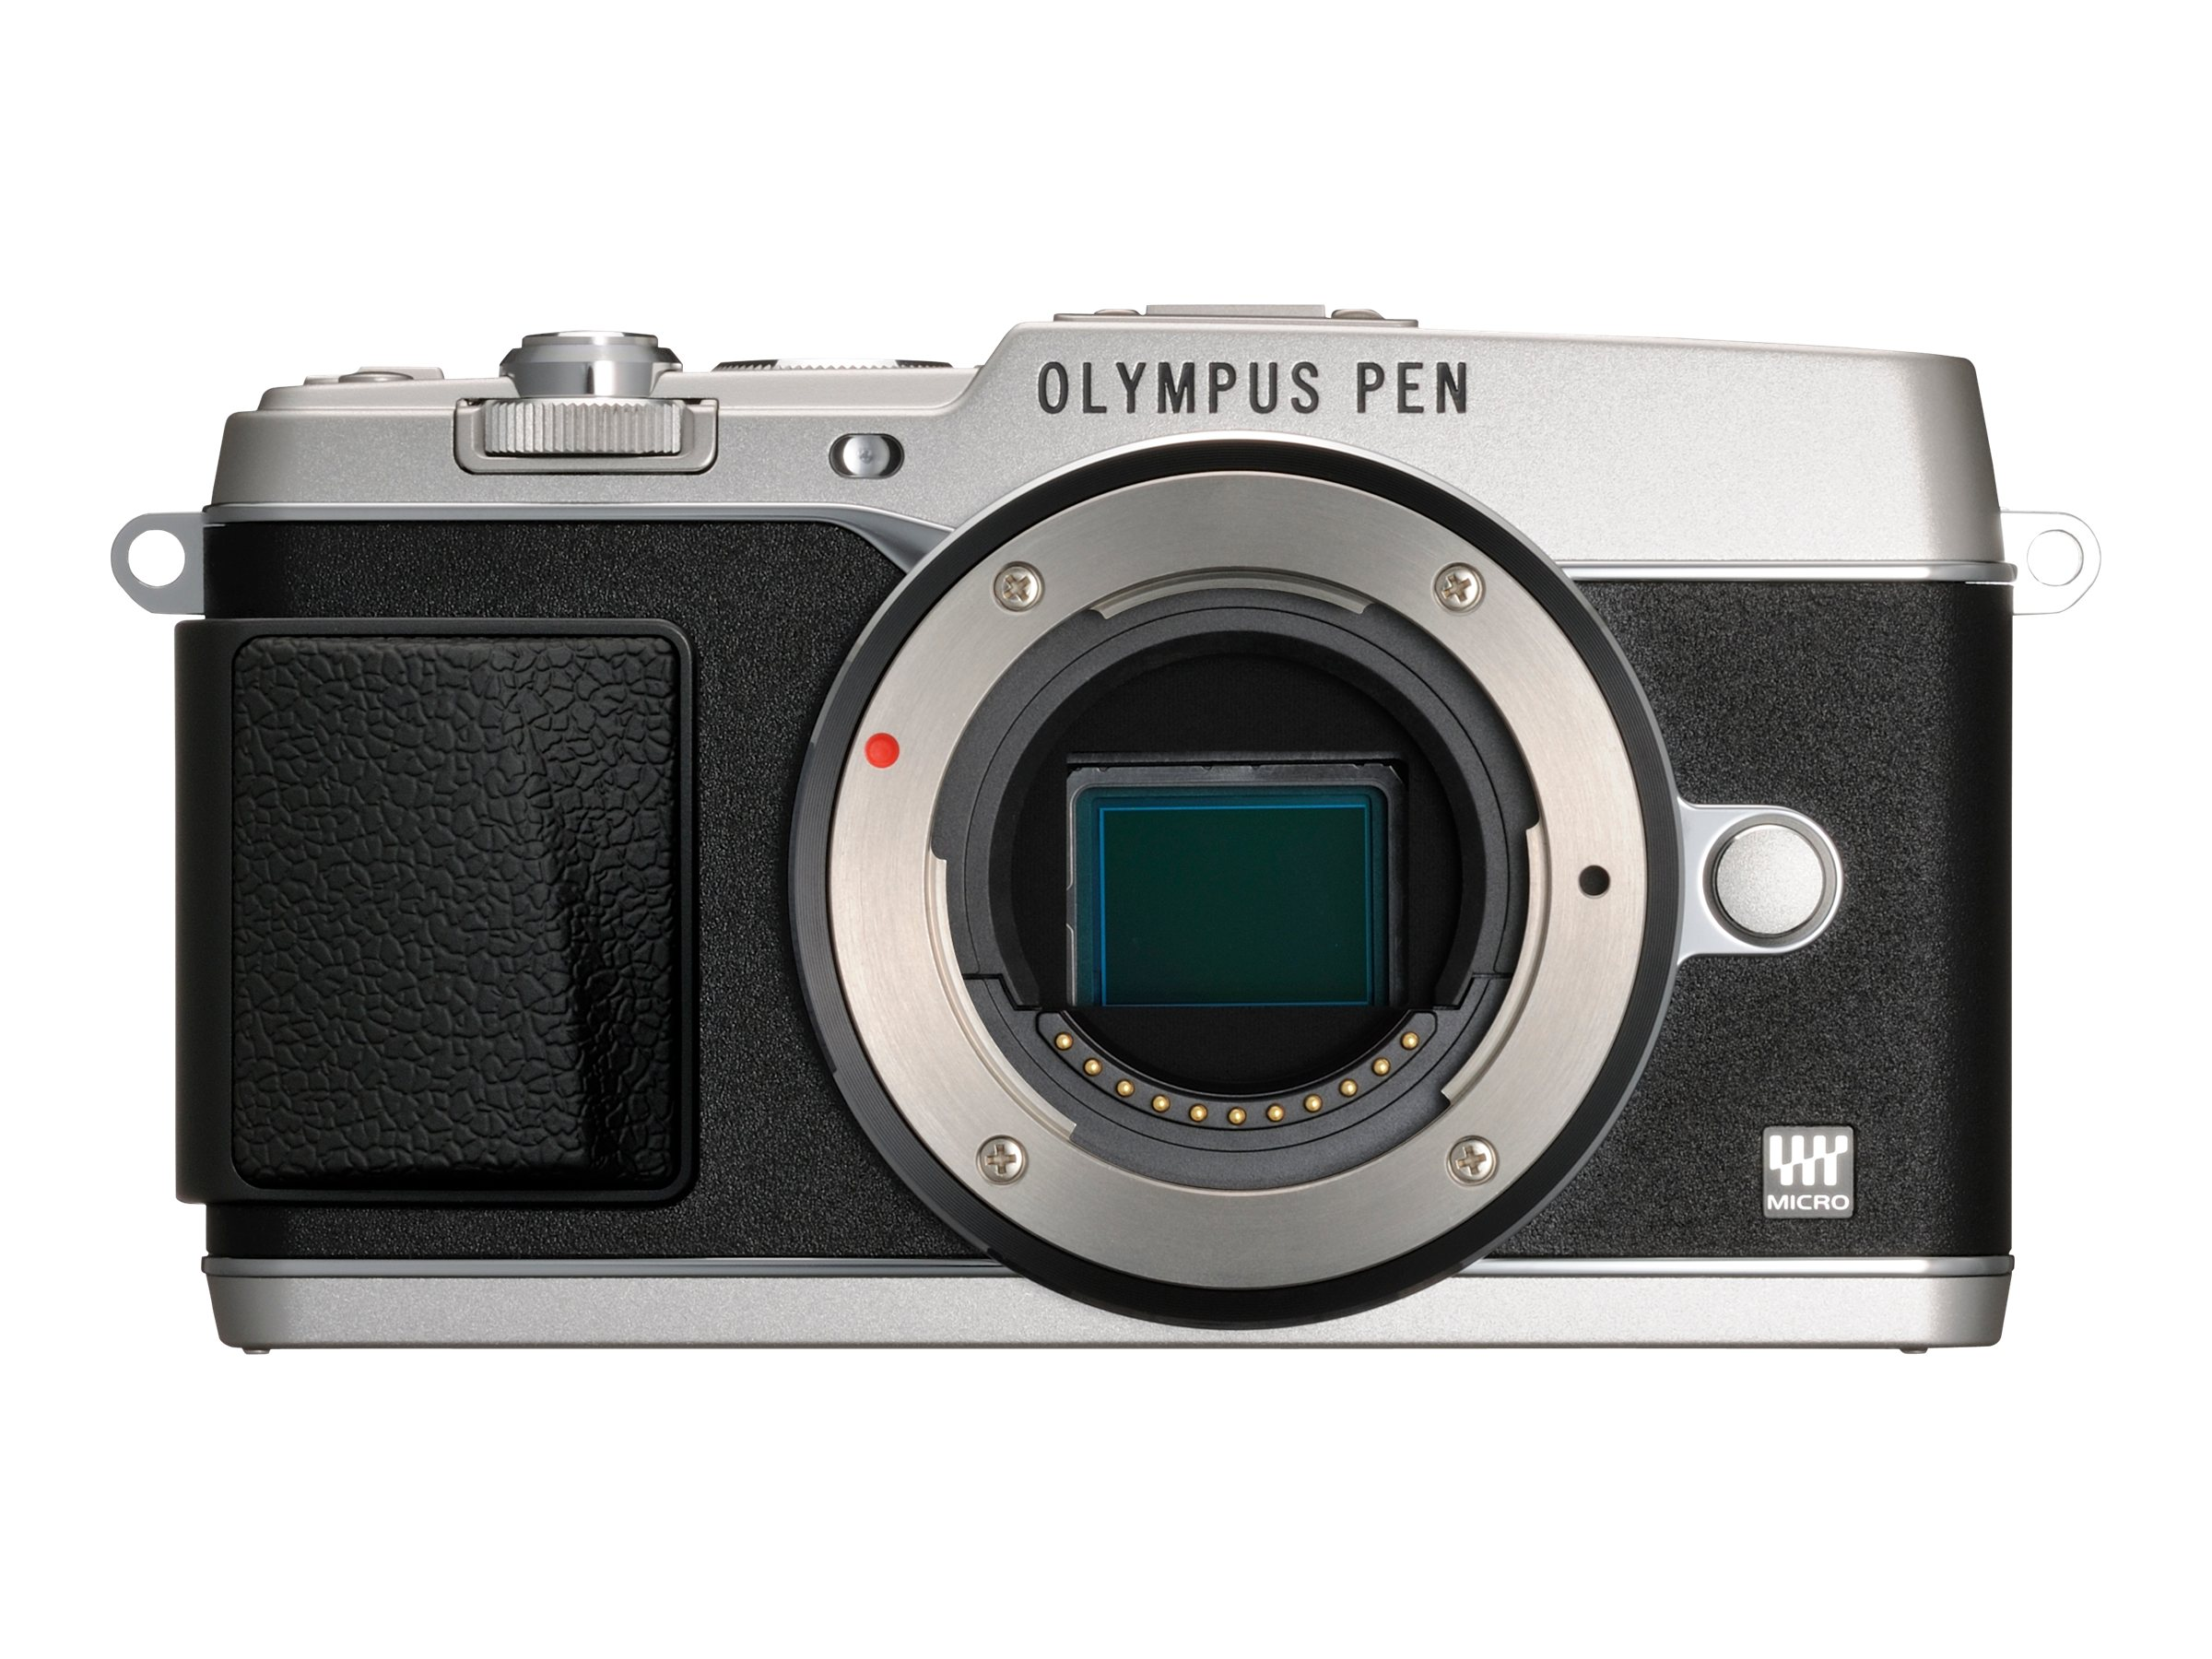 Olympus E-P5 PEN Mirrorless Digital Camera with 17mm f 1.8 Lens and VF-4 Viewfinder, Silver